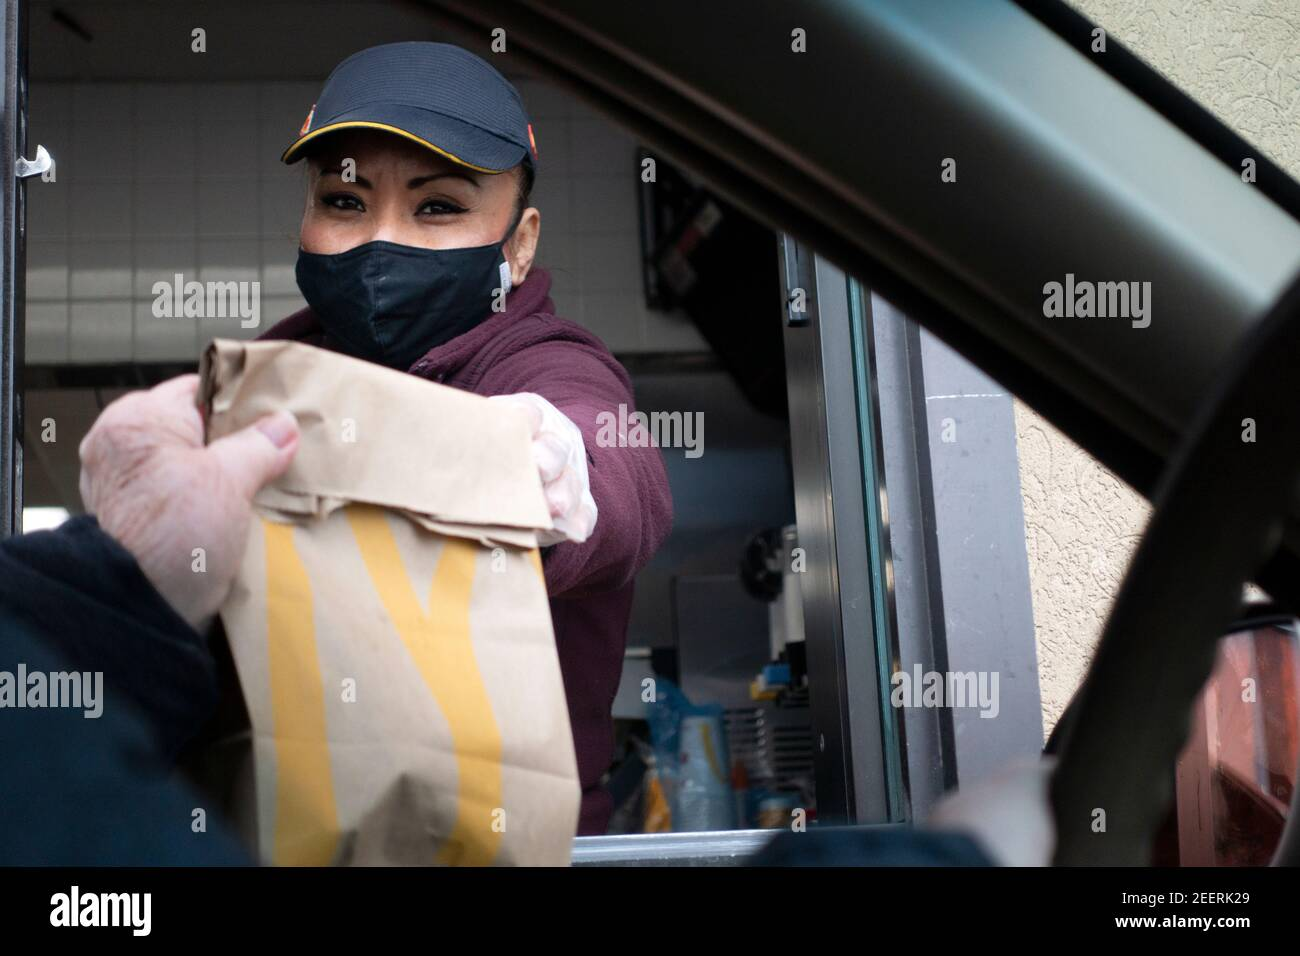 McDonald's food service worker masked handing food to customer in car during he COVID-19 Pandemic. St Paul Minnesota MN USA Stock Photo